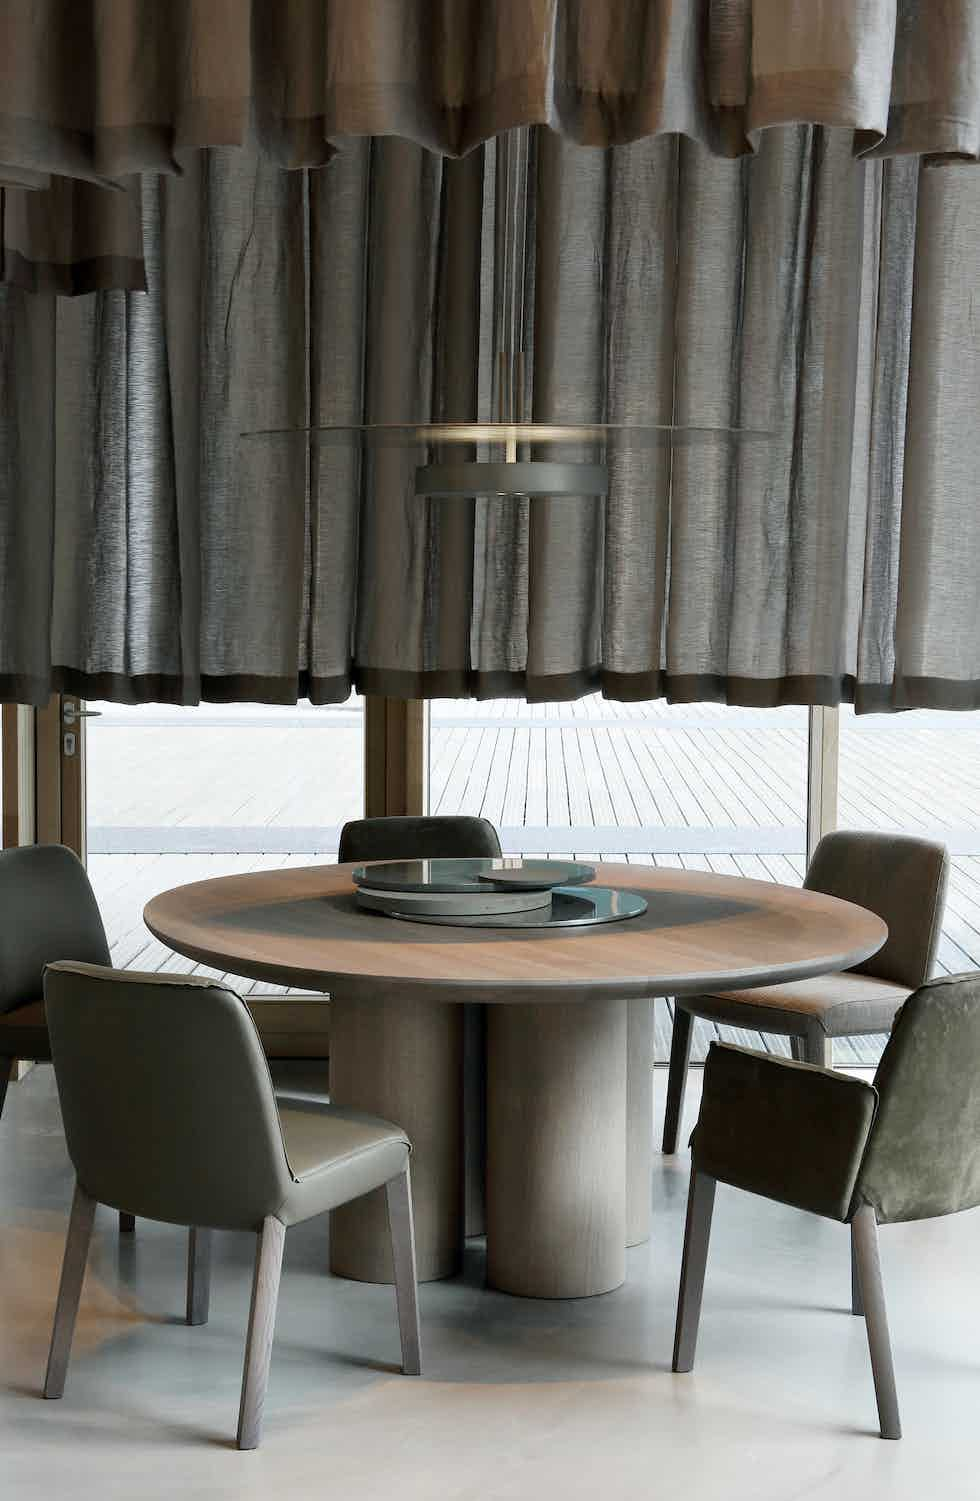 Piet boon olle dining table insitu haute living